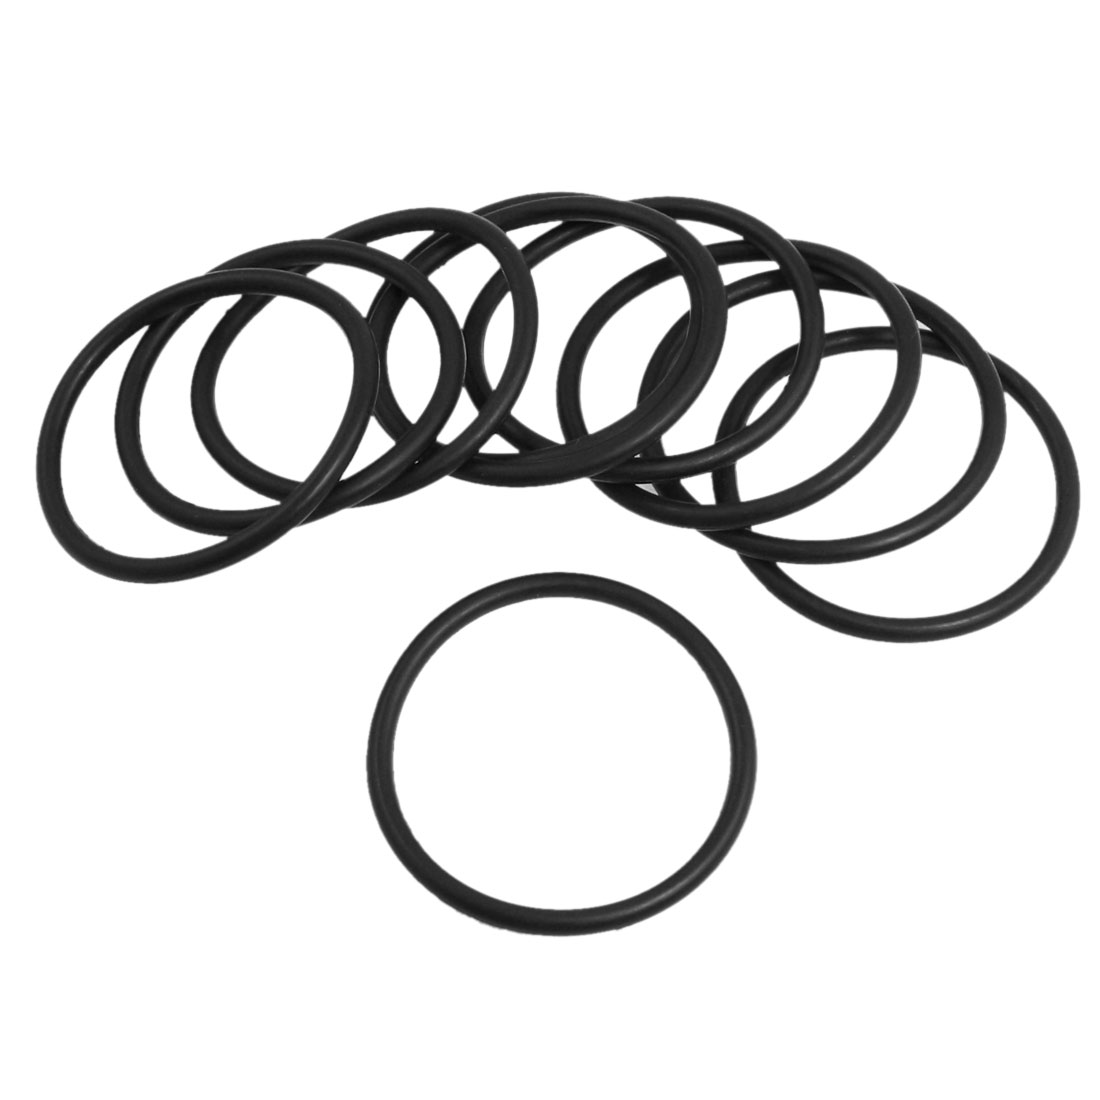 10 Pcs Oil Seal O Rings Black Nitrile Rubber 58mm OD 4mm Thickness